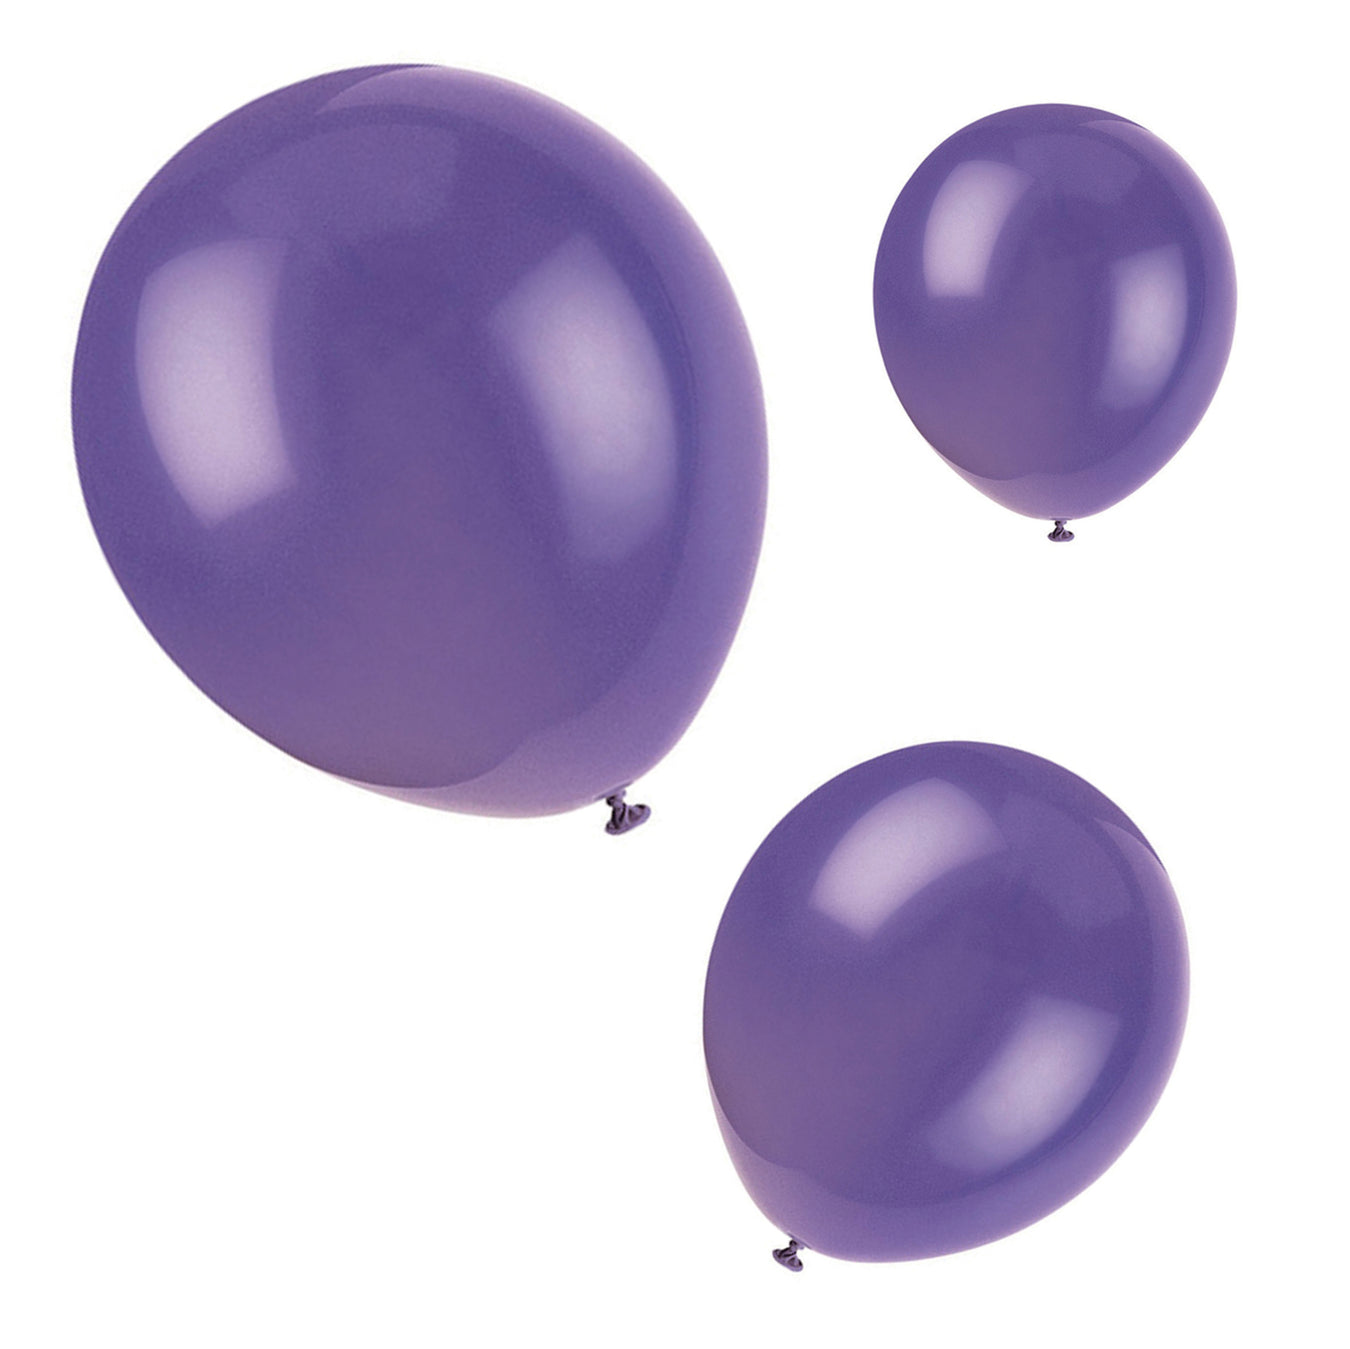 Plain Coloured Balloons (BALLOONS)